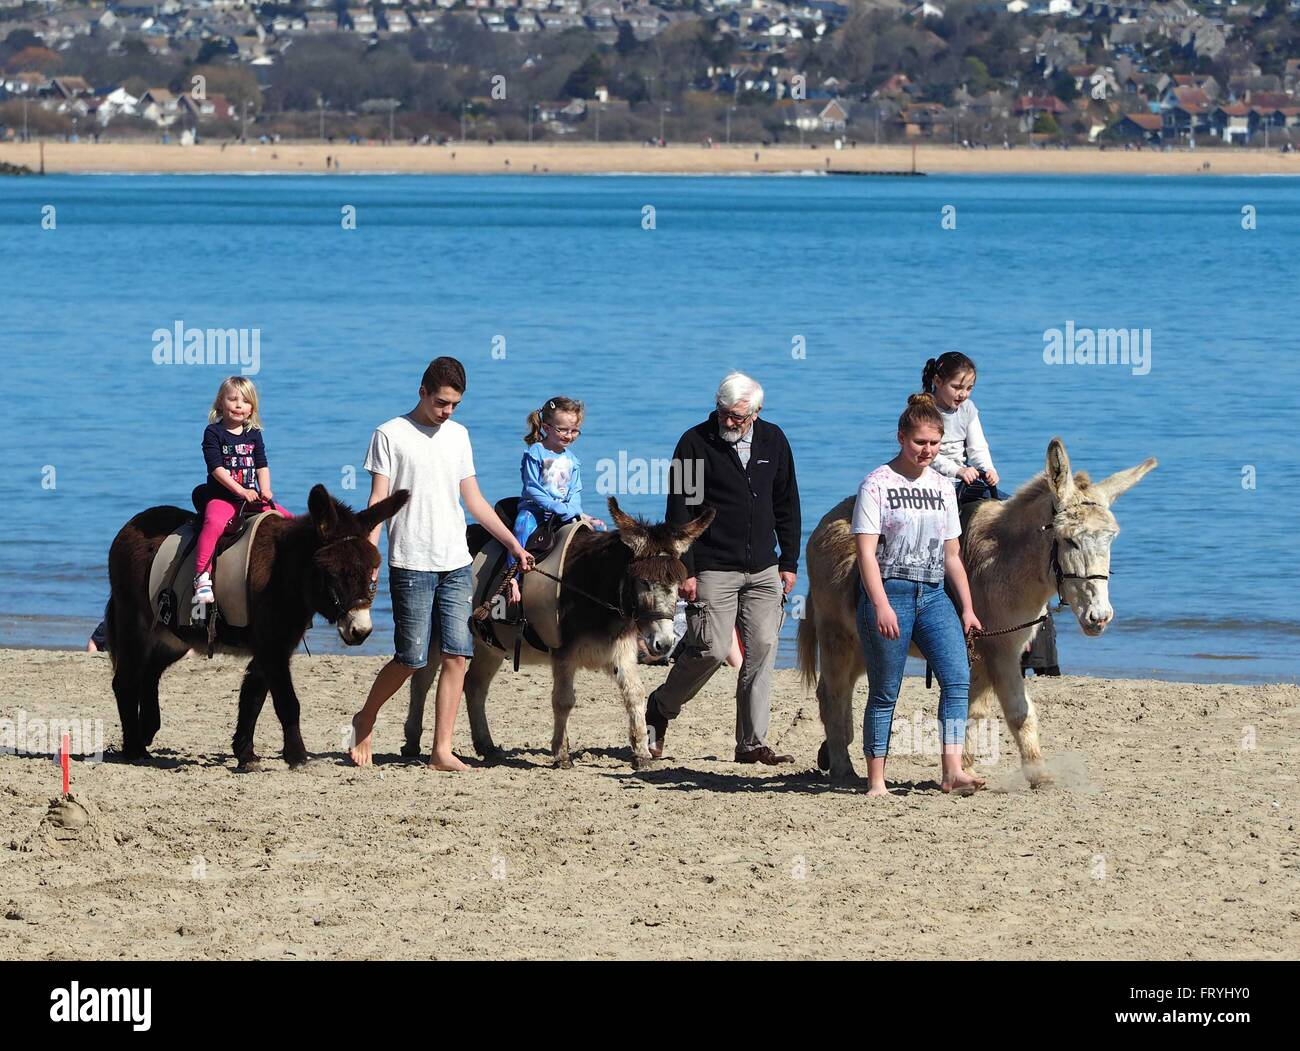 Donkey ride on the beach at Weymouth, Dorset, UK - Stock Image